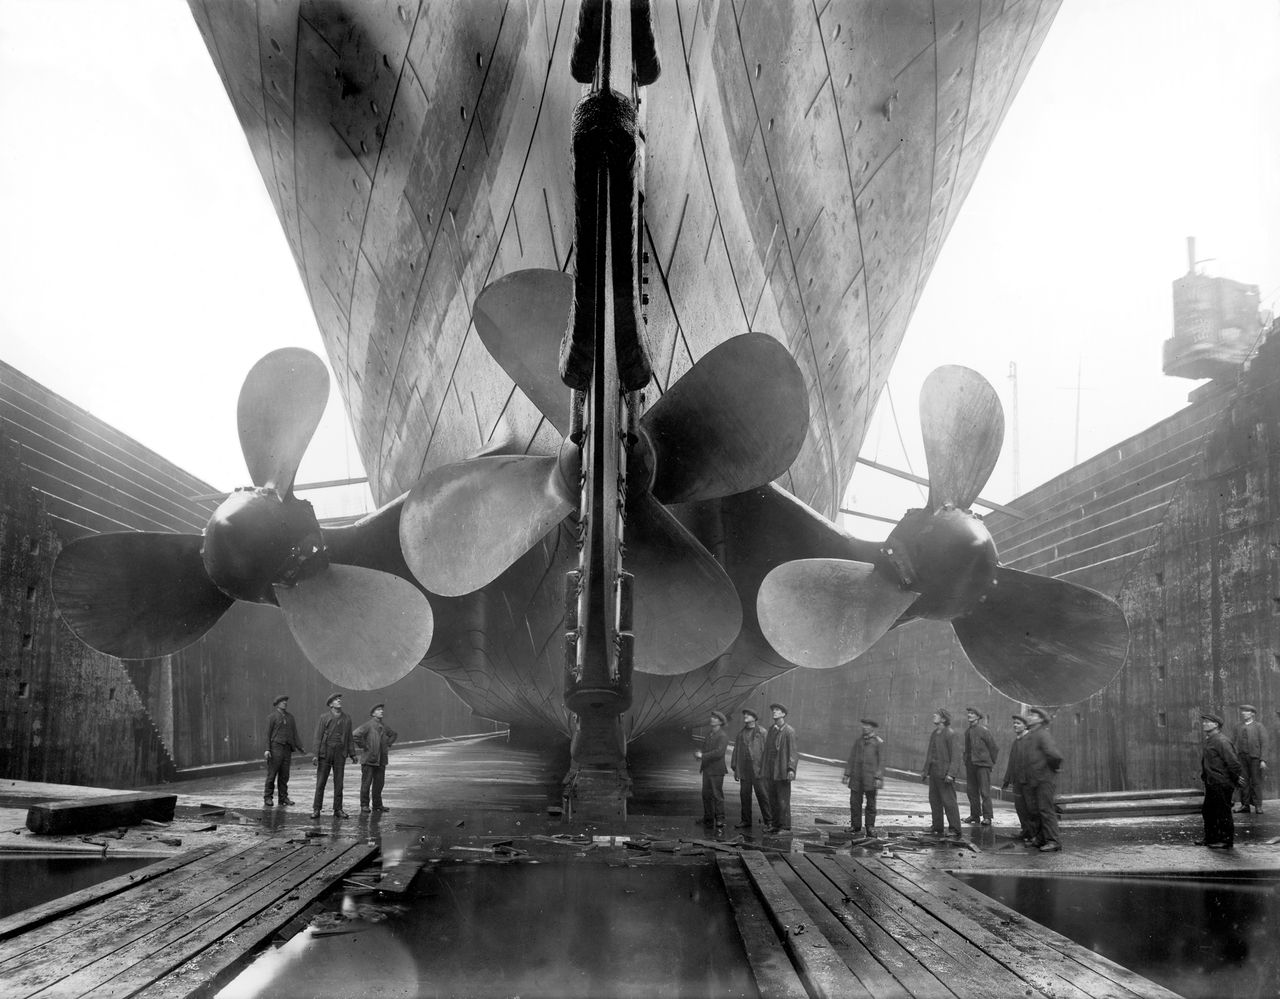 The three steam-powered propellers of the RMS Titanic in dry dock are shown in a undated photograph released to the press on Jan. 21, 2010. Built in Belfast by the Harland & Wolff shipyard, the Titanic was intended to be the largest, most luxurious and safest ship in the world. Source: Titanic: The Artifacts Exhibition via Bloomberg EDITOR'S NOTE: NO SALES. EDITORIAL USE ONLY.